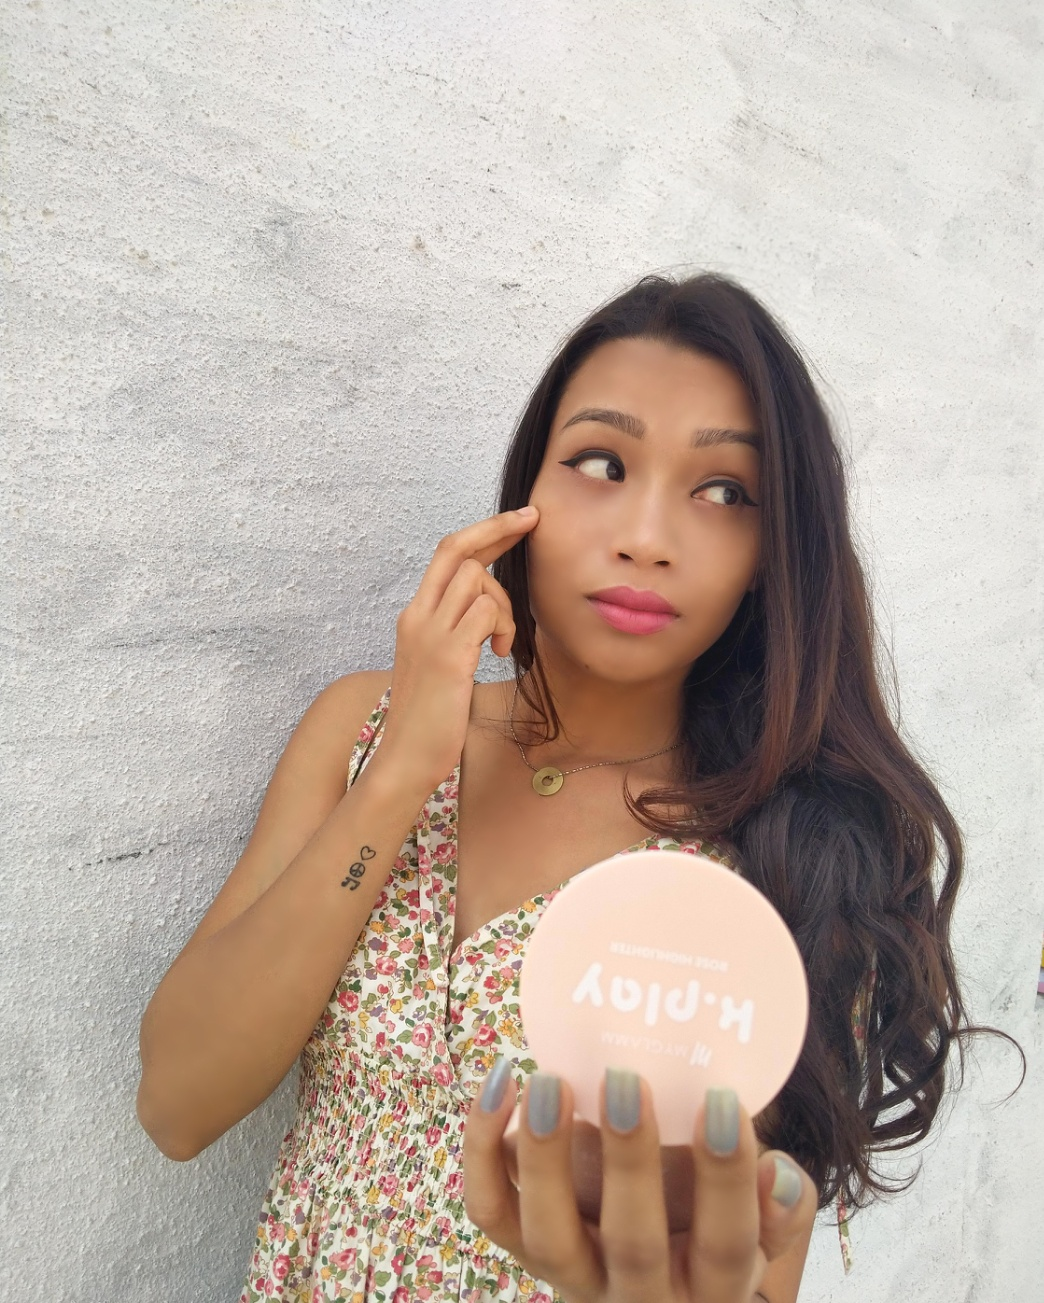 MyGlamm K.PLAY FLAVOURED HIGHLIGHTER – PINK ROSE pic 1-Highlighting game on.-By geetanjali_bharali